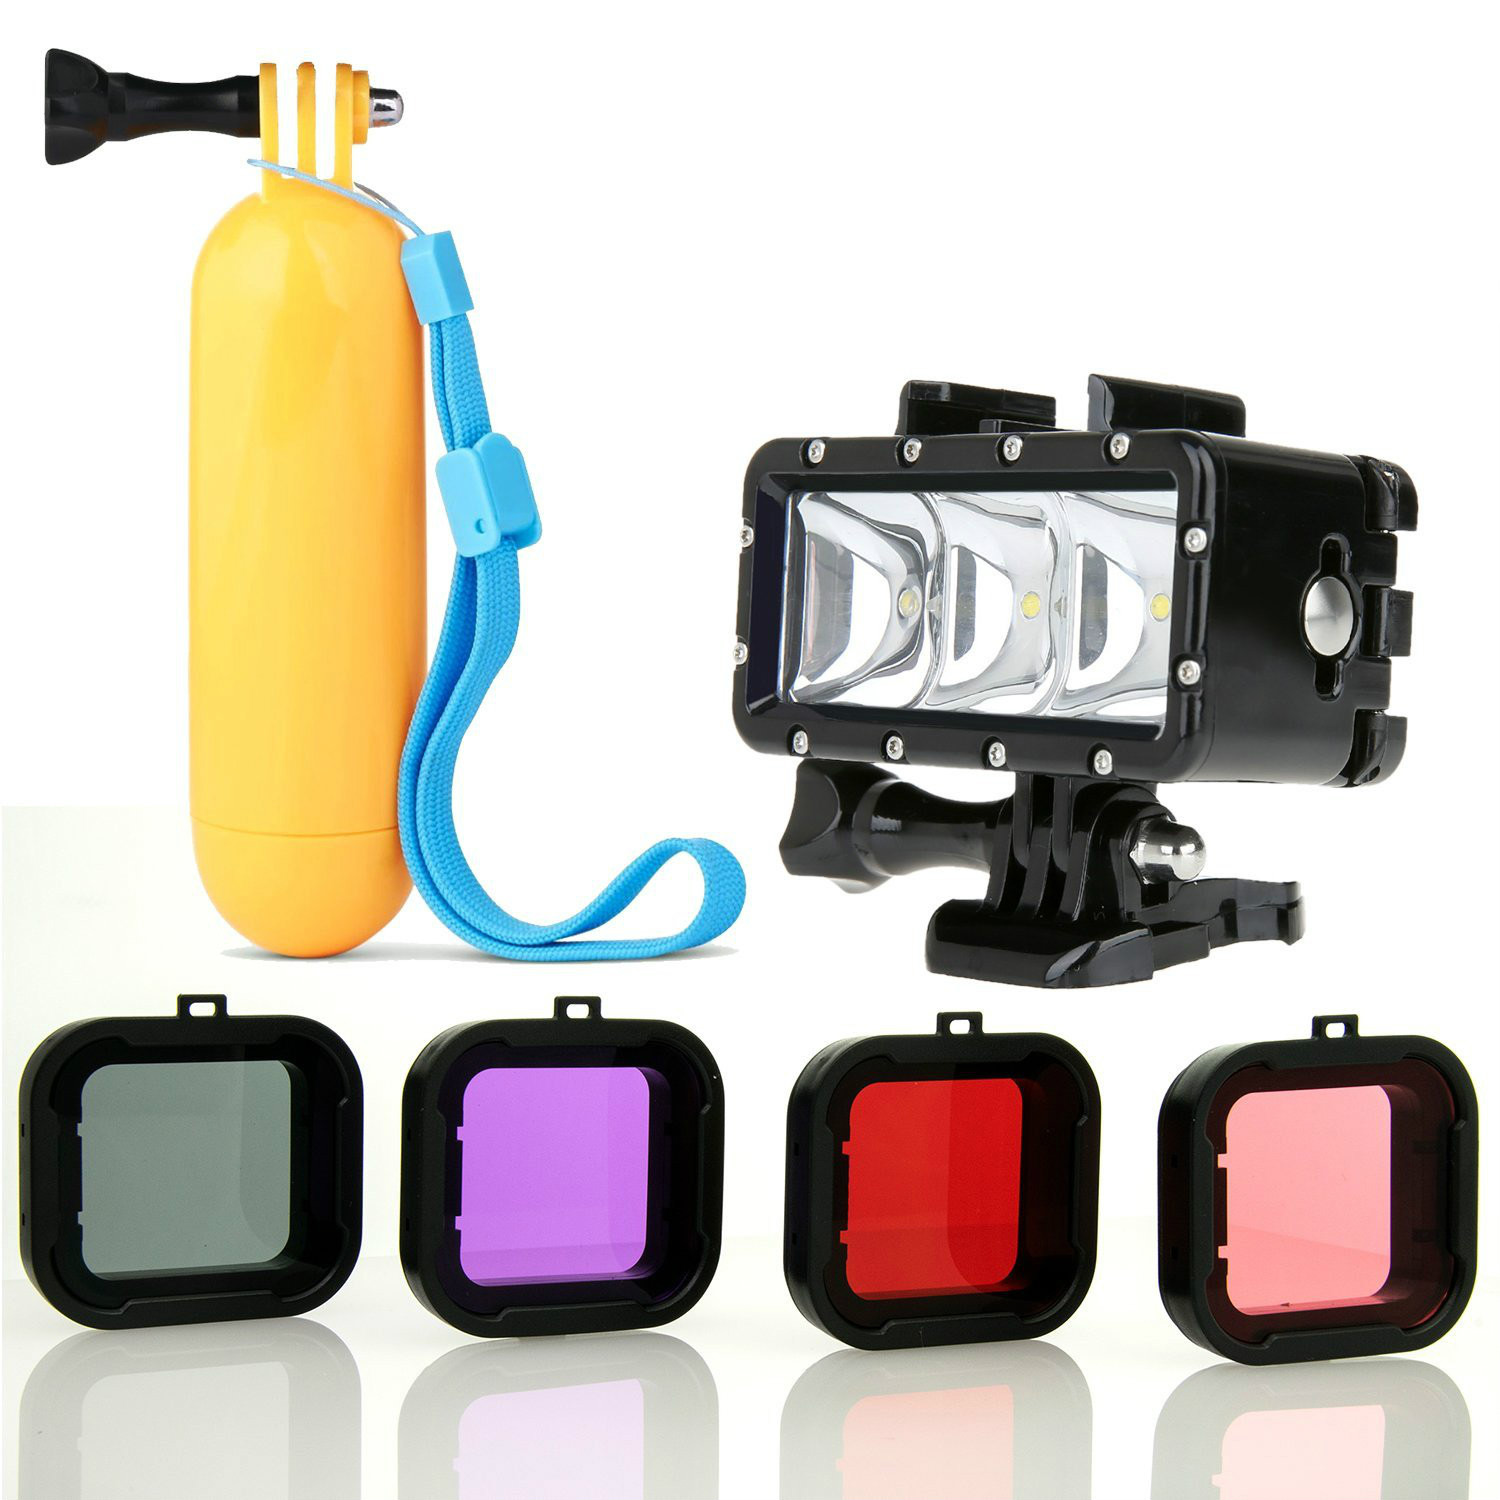 Galleria fotografica FeoconT Floating Hand Grip Waterproof LED Flash Light Scuba 4PC Filter For GoPro HERO5 sjcam yi 4k Action Cameras